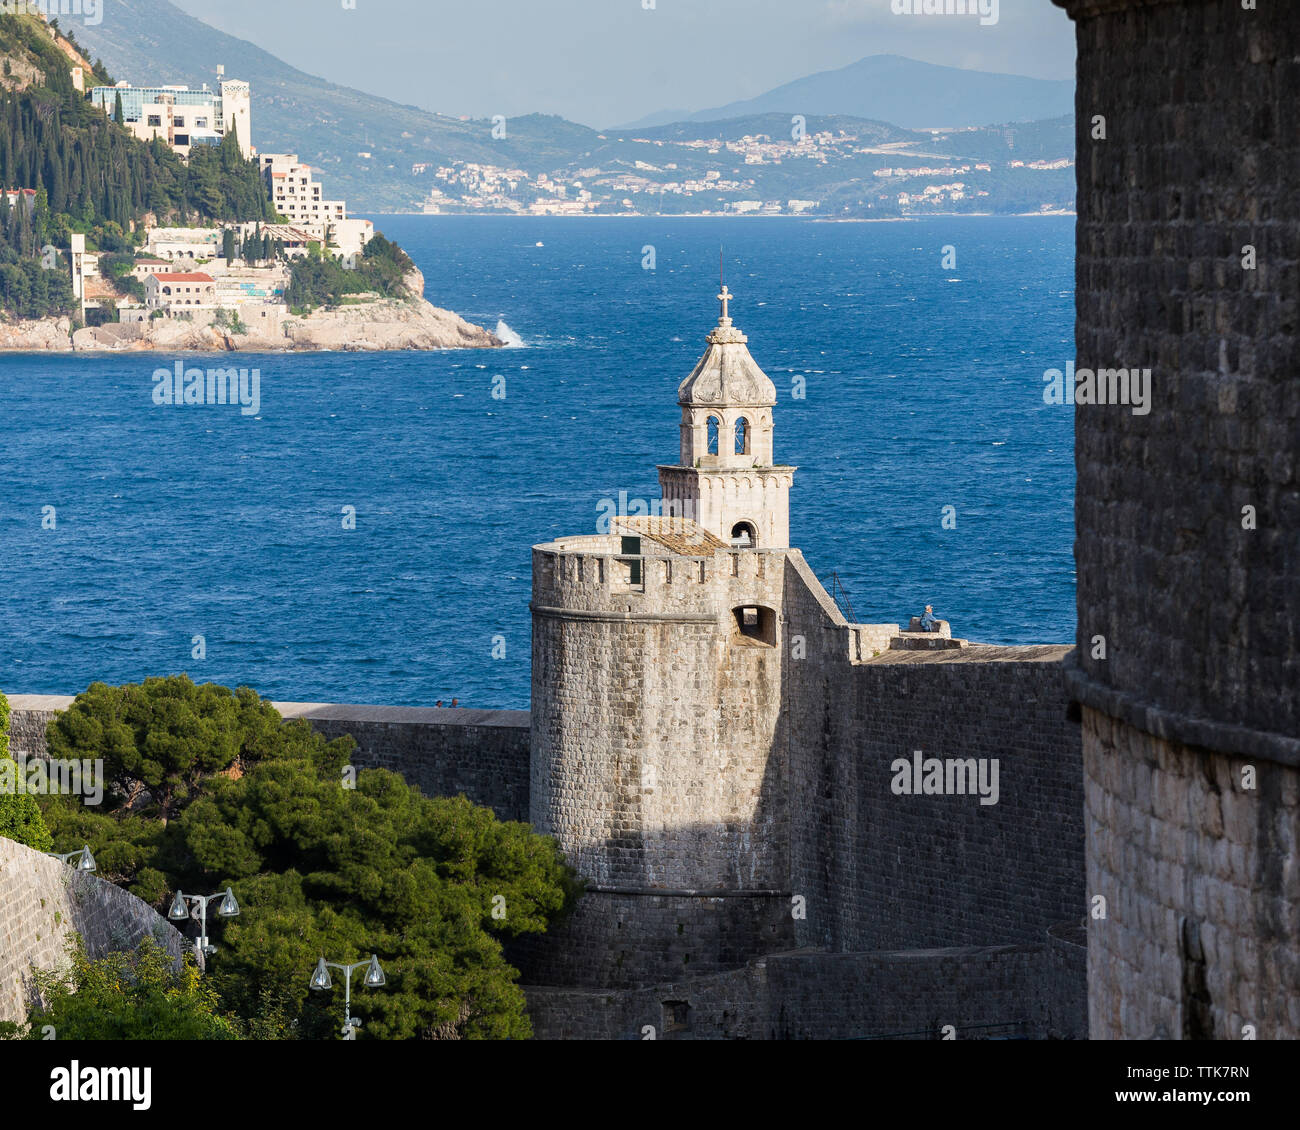 03 May 2019, Dubrovnik, Croatia. Old city architecture. - Stock Image